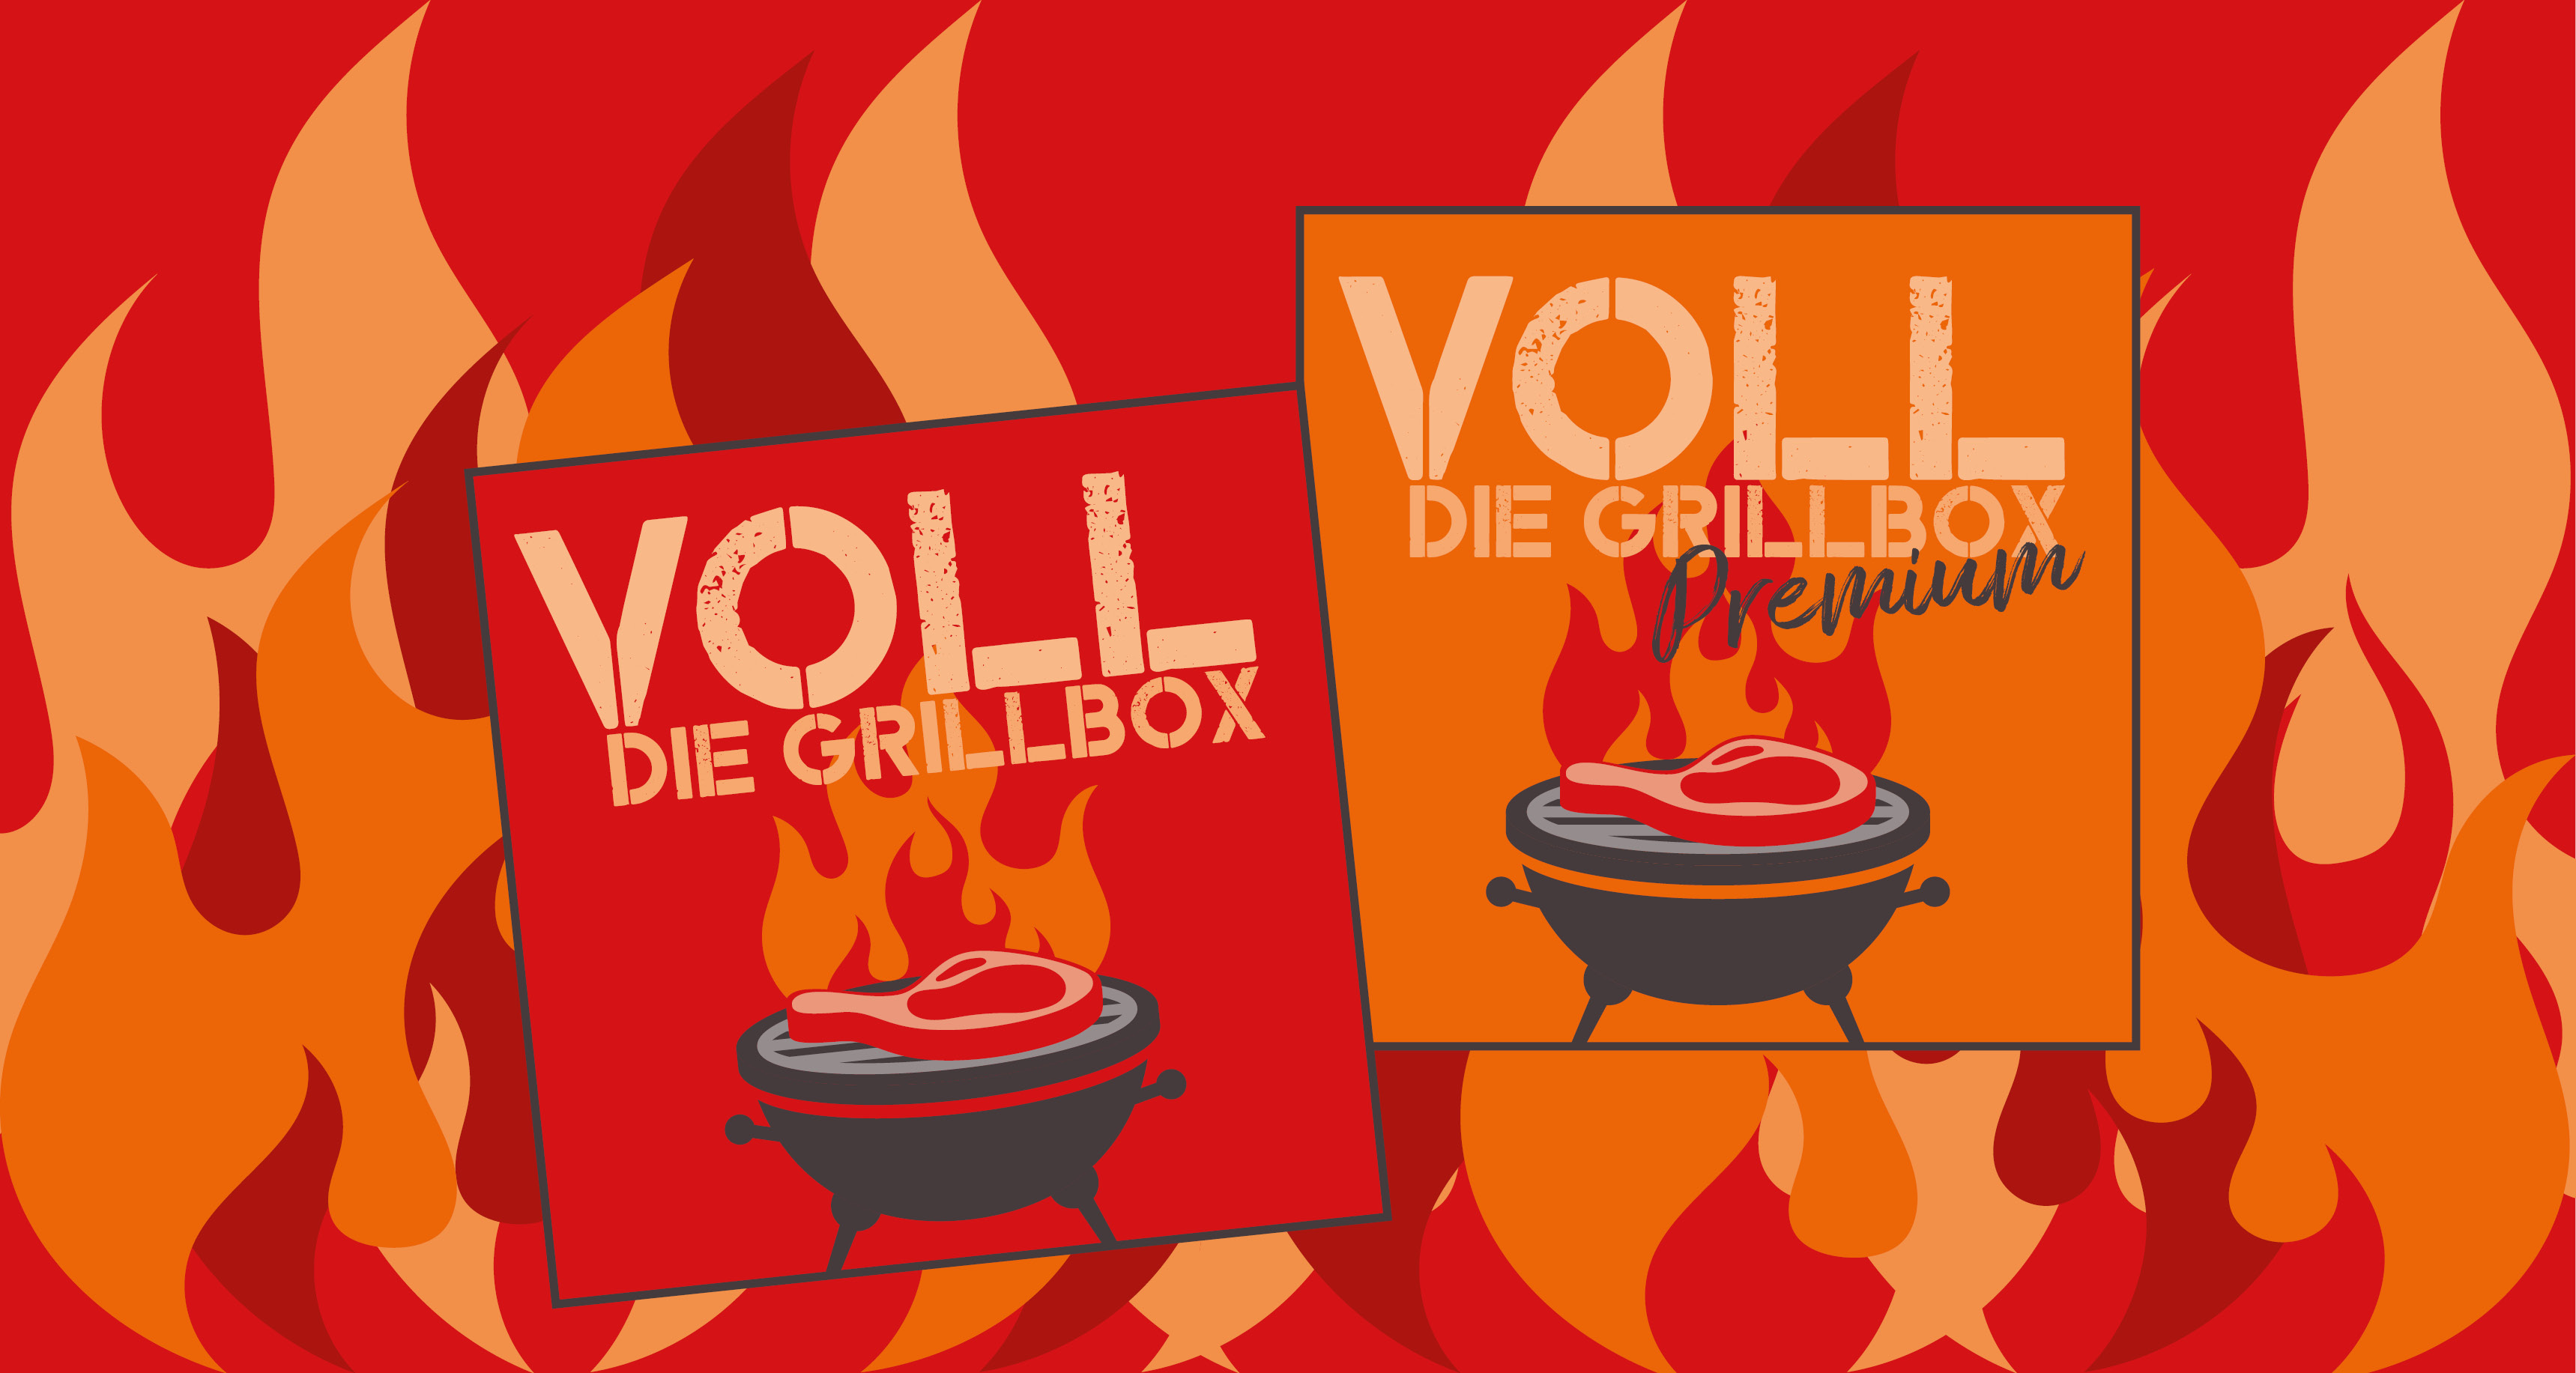 Grillbox zu Pfingsten